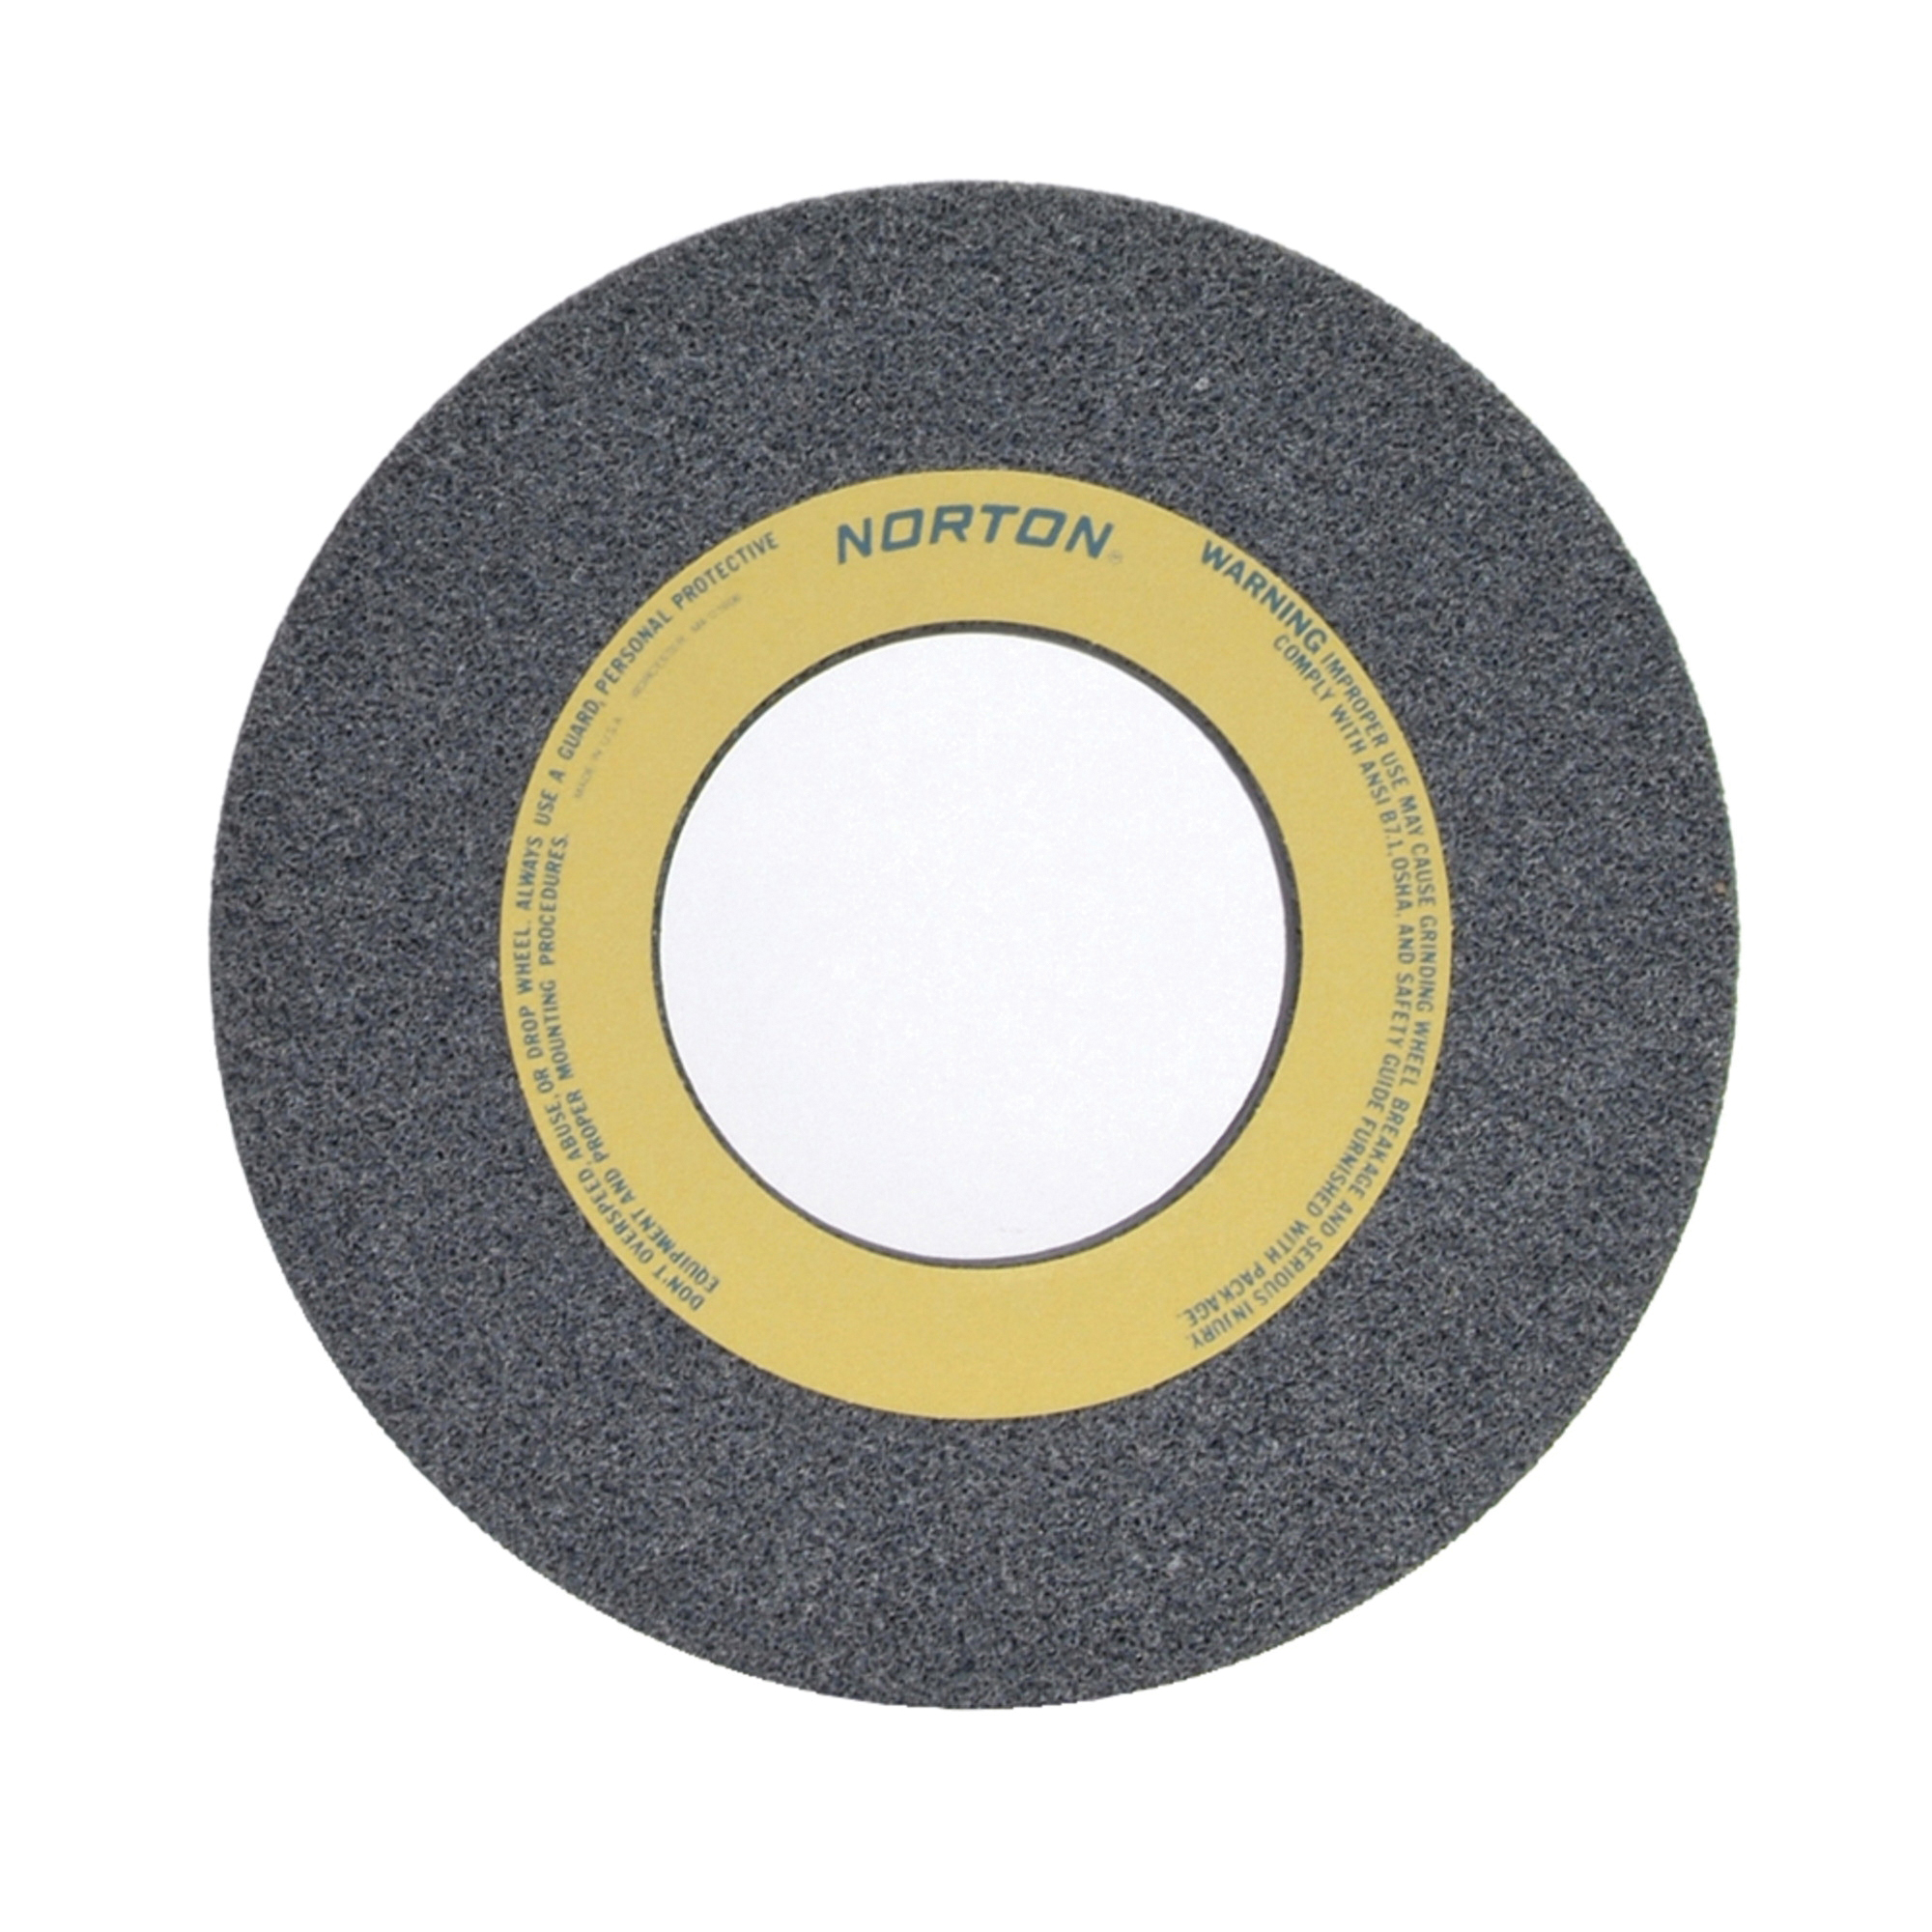 Norton® 66253364074 32A Straight Toolroom Wheel, 14 in Dia x 1 in THK, 5 in Center Hole, 46 Grit, Aluminum Oxide Abrasive